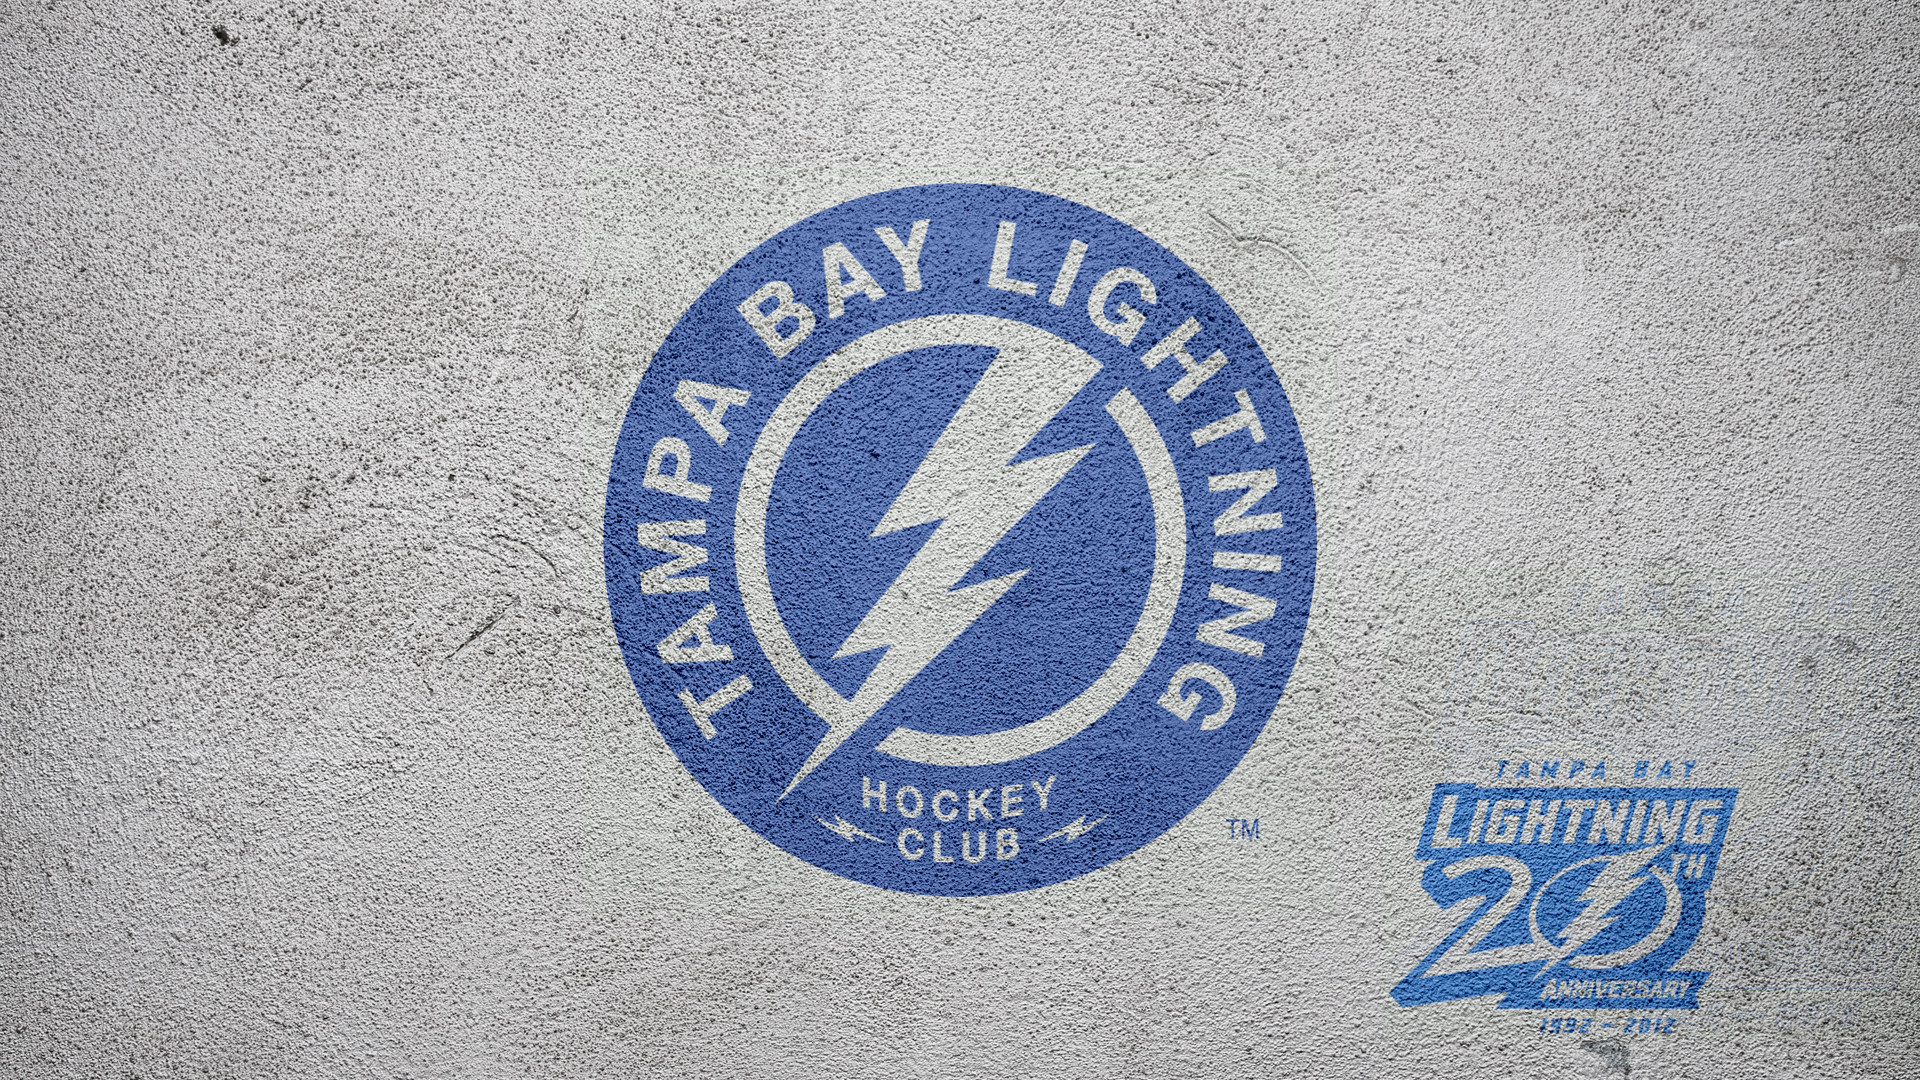 1920x1080 Tampa Bay Lightning NHL Wallpaper by Realyze on DeviantArt